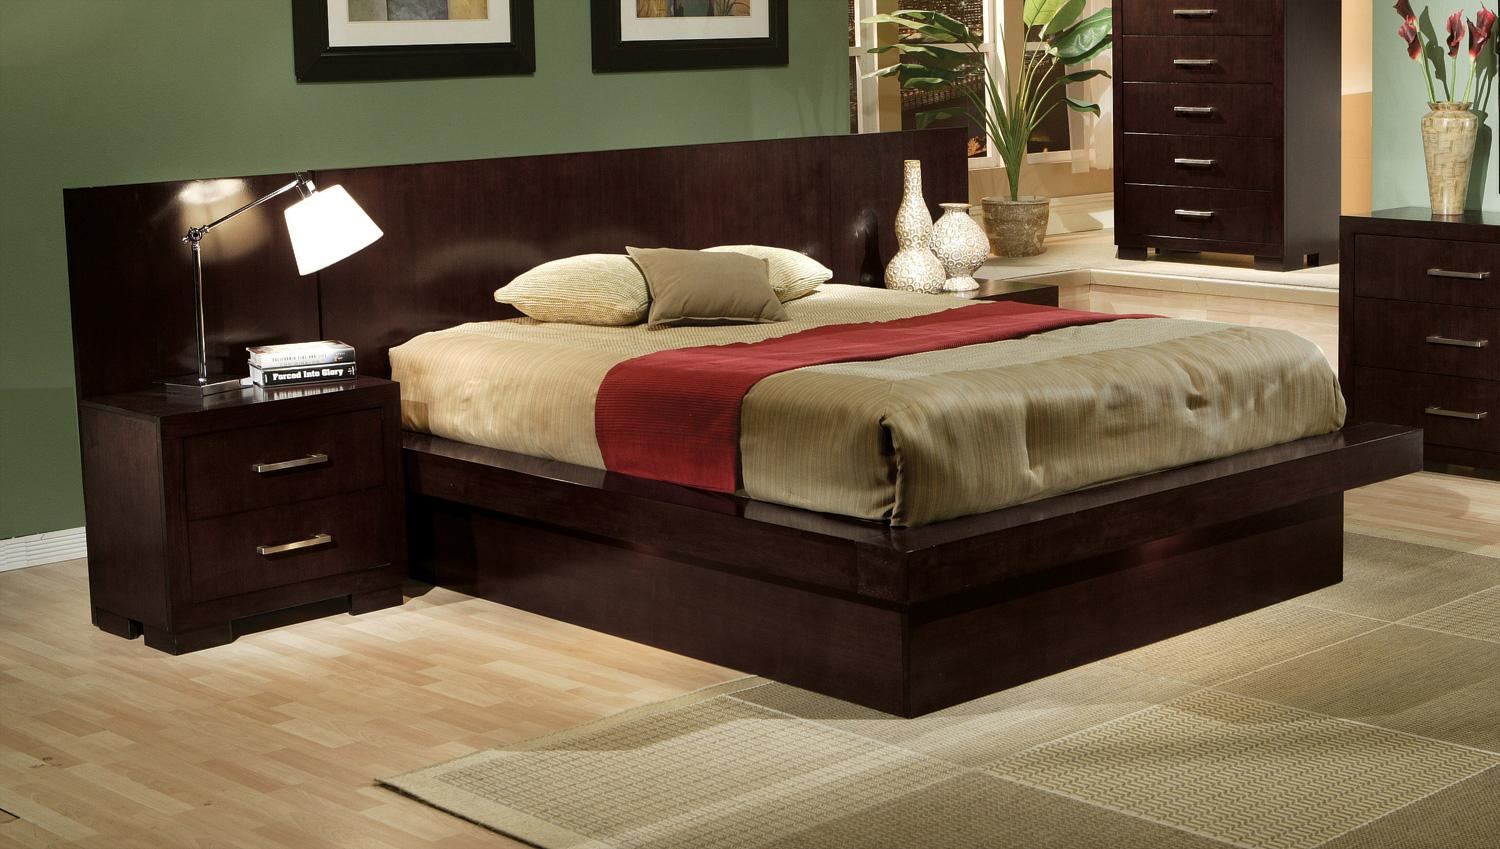 modern 4 pc platform bed queen bedroom fairfax va furniture stores. Black Bedroom Furniture Sets. Home Design Ideas